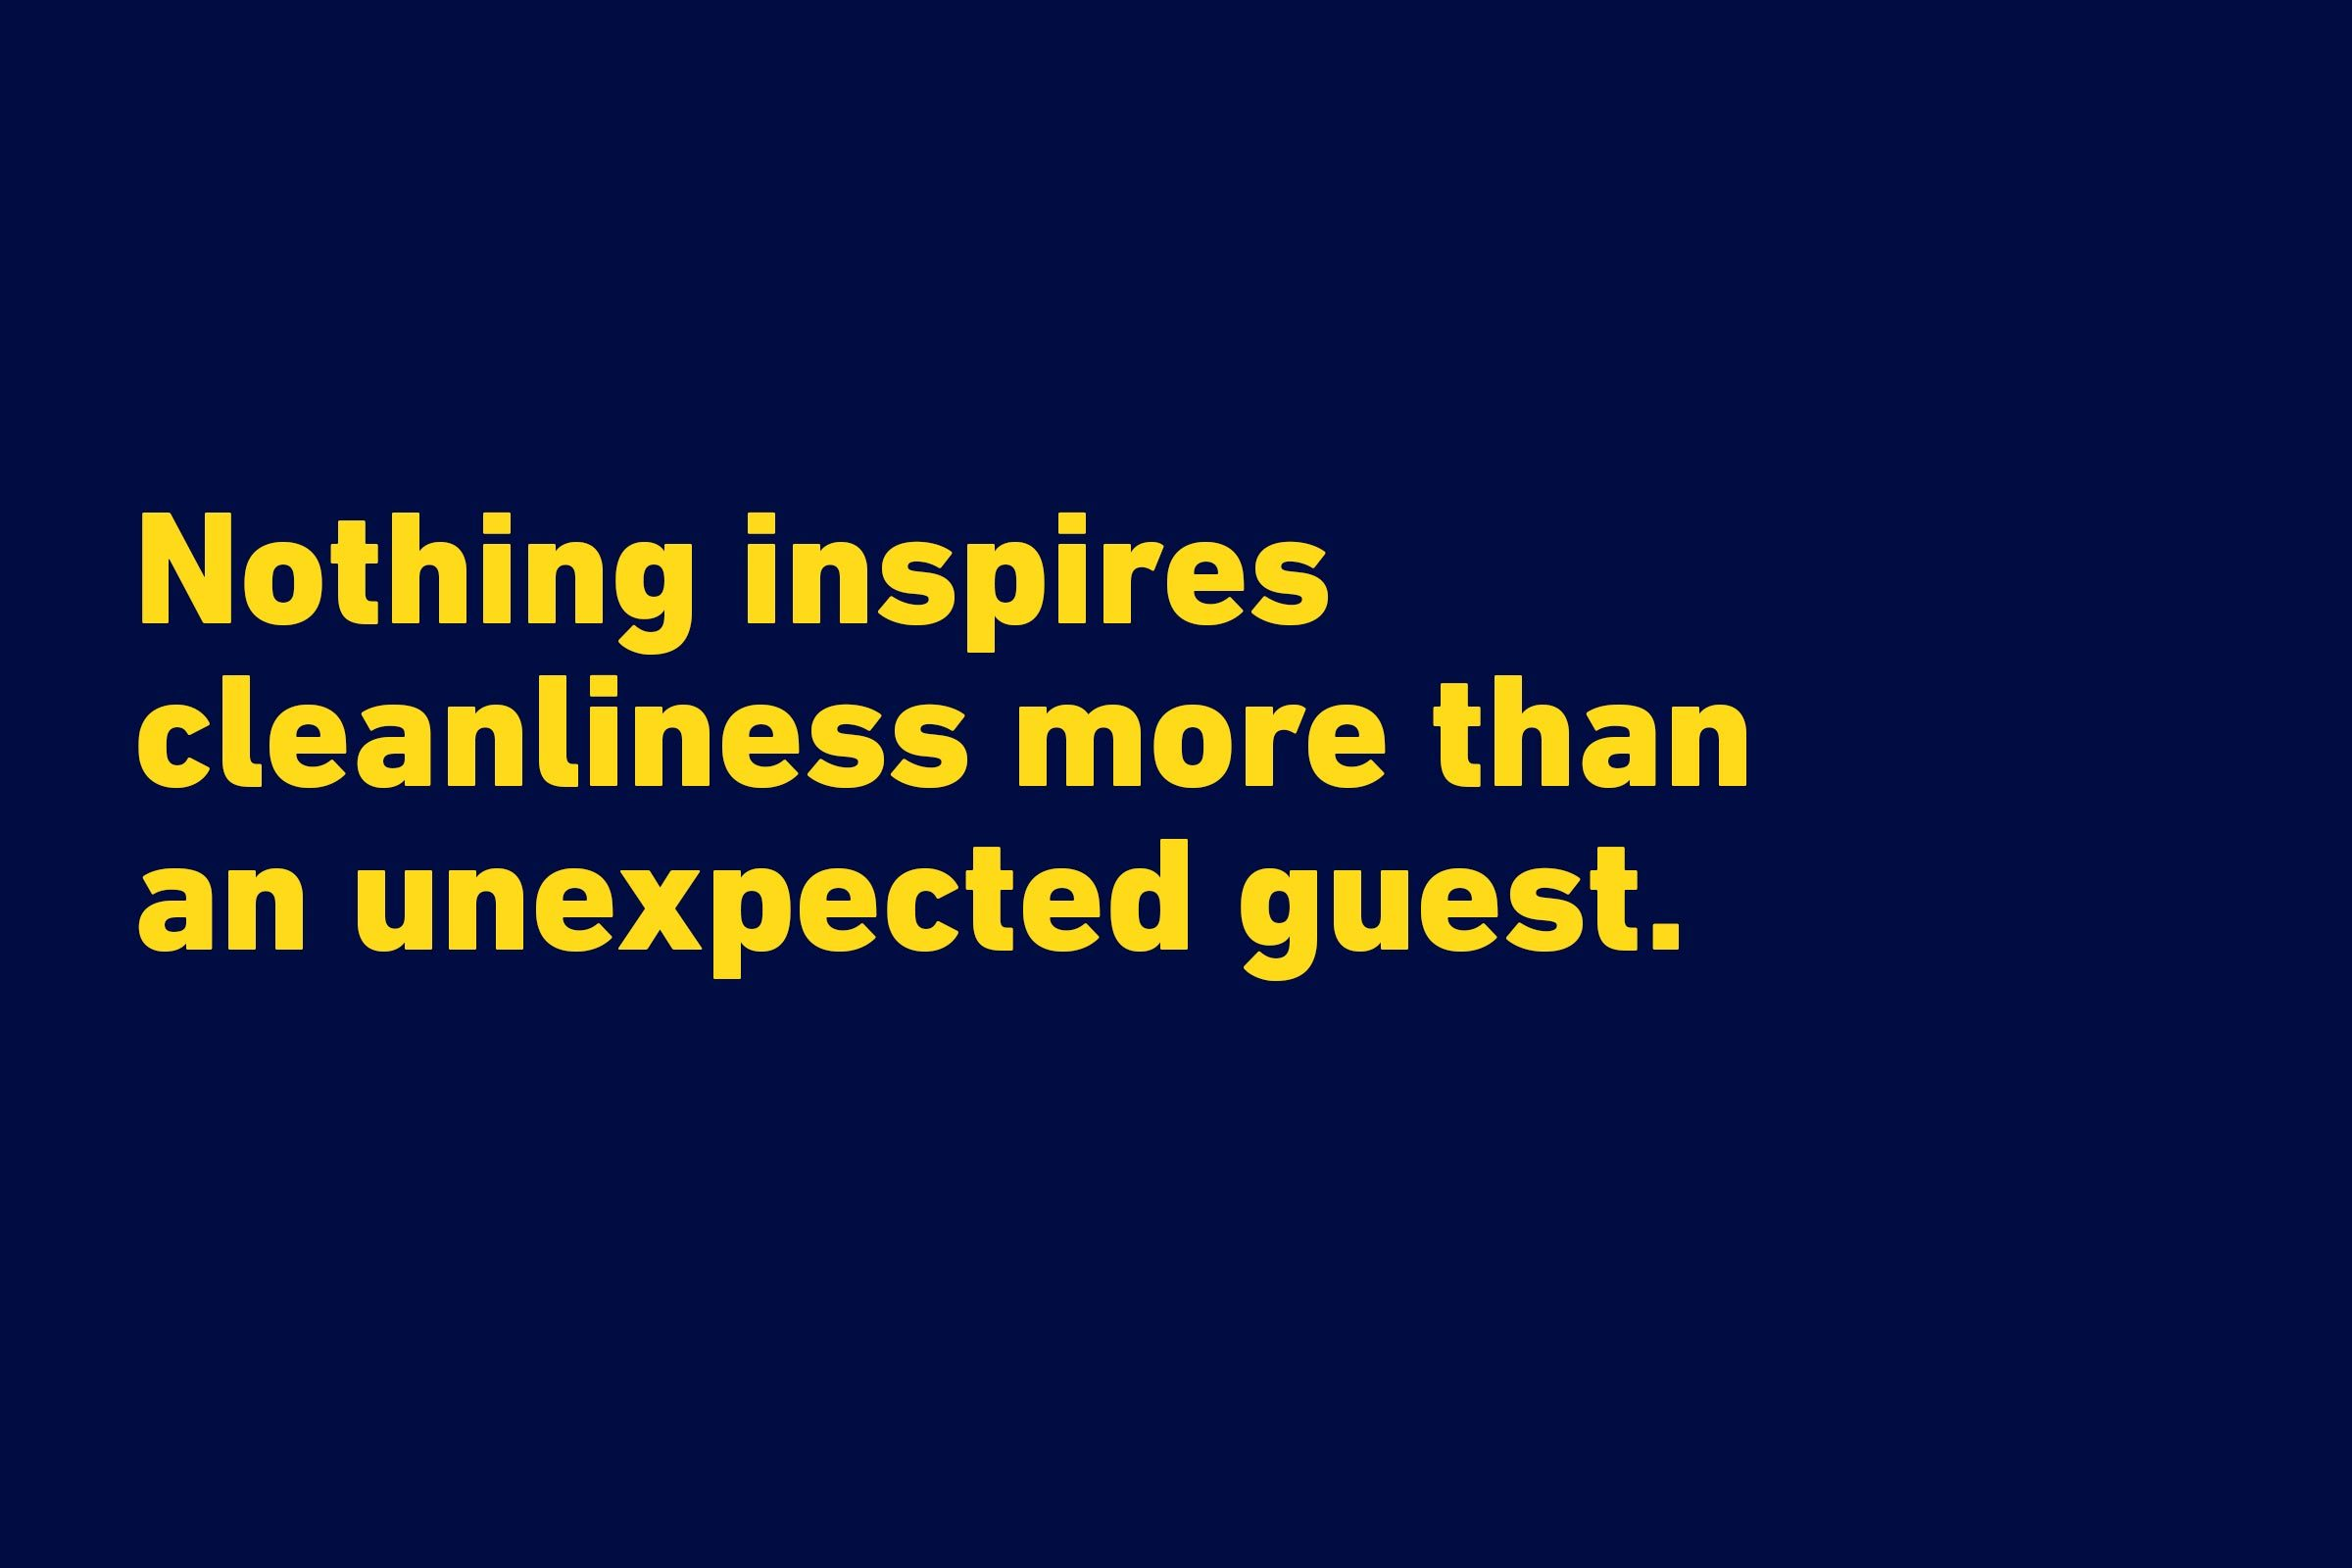 """Nothing inspires cleanliness more than an unexpected guest."" —Radhika Mundra"